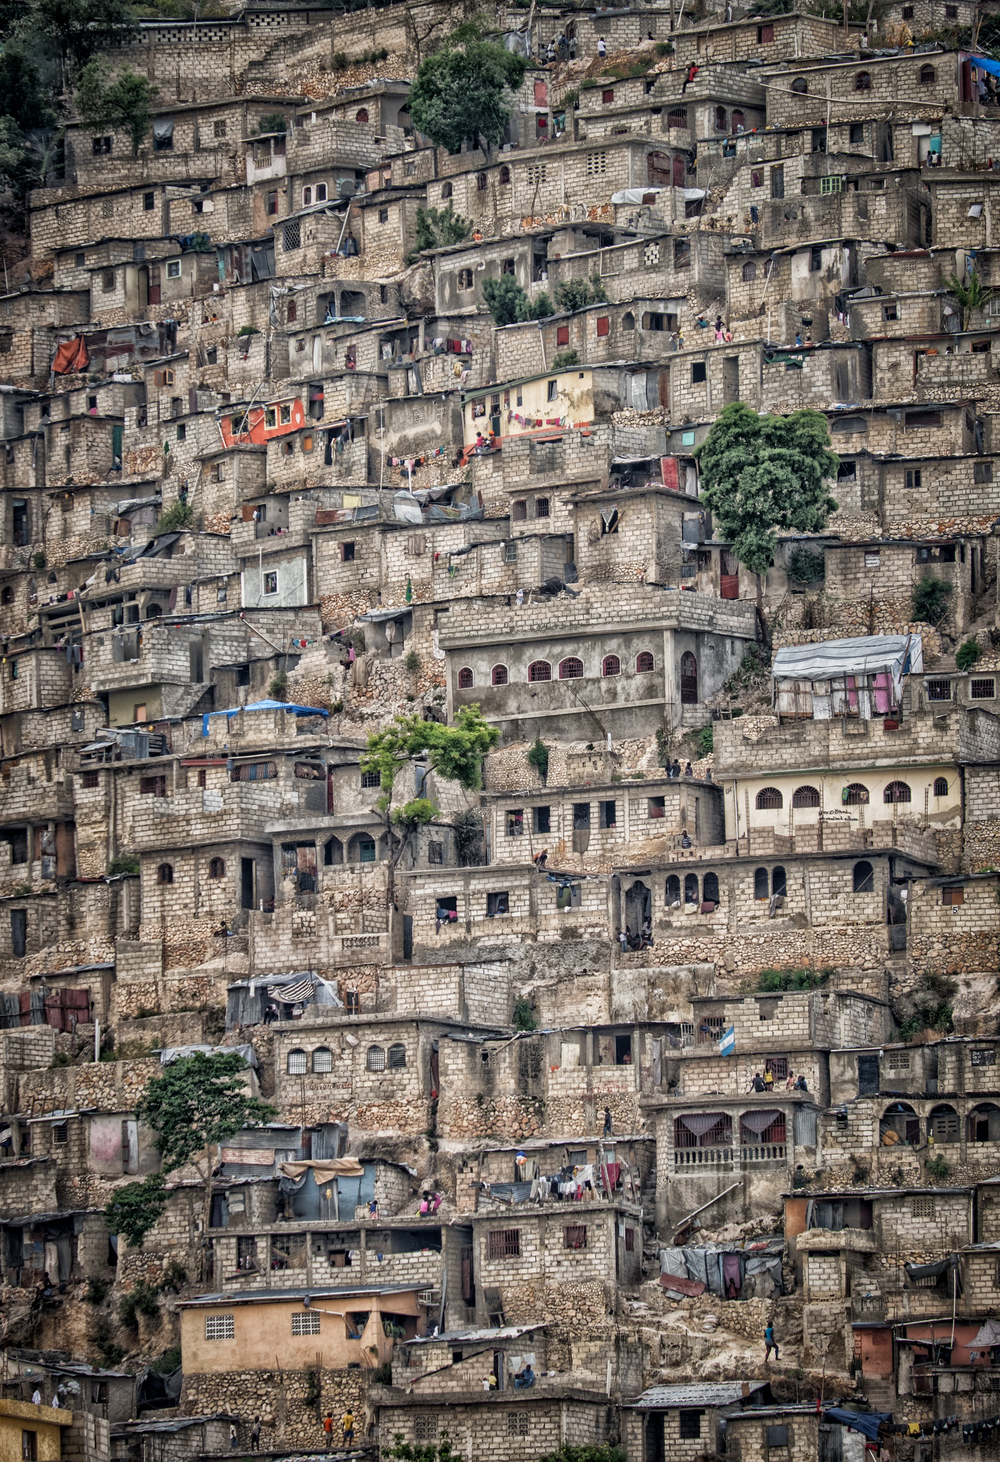 Jalousie slums, Port-Au-Prince, Haiti. 200mm at f/4.8 on the XT-1